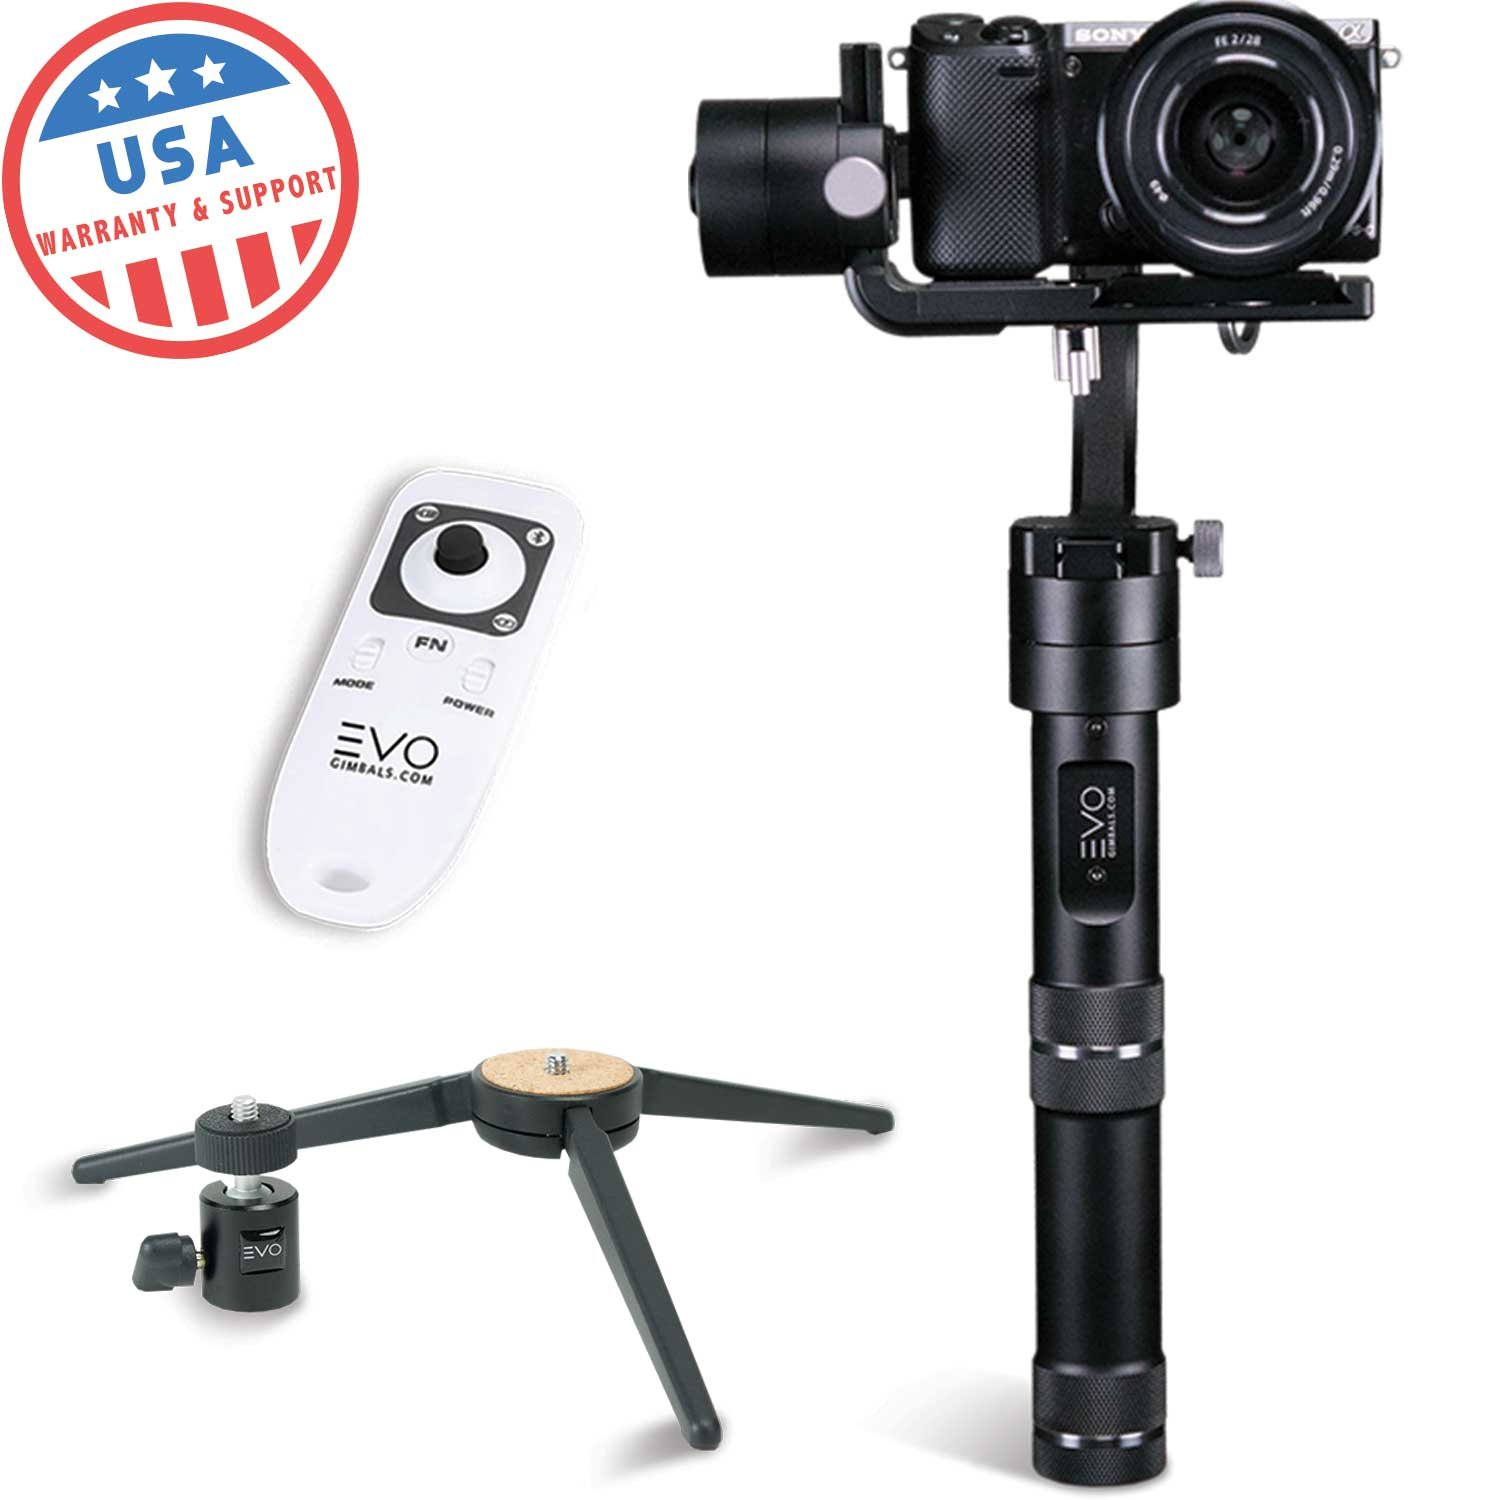 EVO RAGE-S 3 Axis Handheld Gimbal for Smartphones, Action Cameras & Mirrorless Cameras   1 Year US Warranty   Bundle Includes: EVO Rage-S + EVO Wireless Remote + Tripod Stand